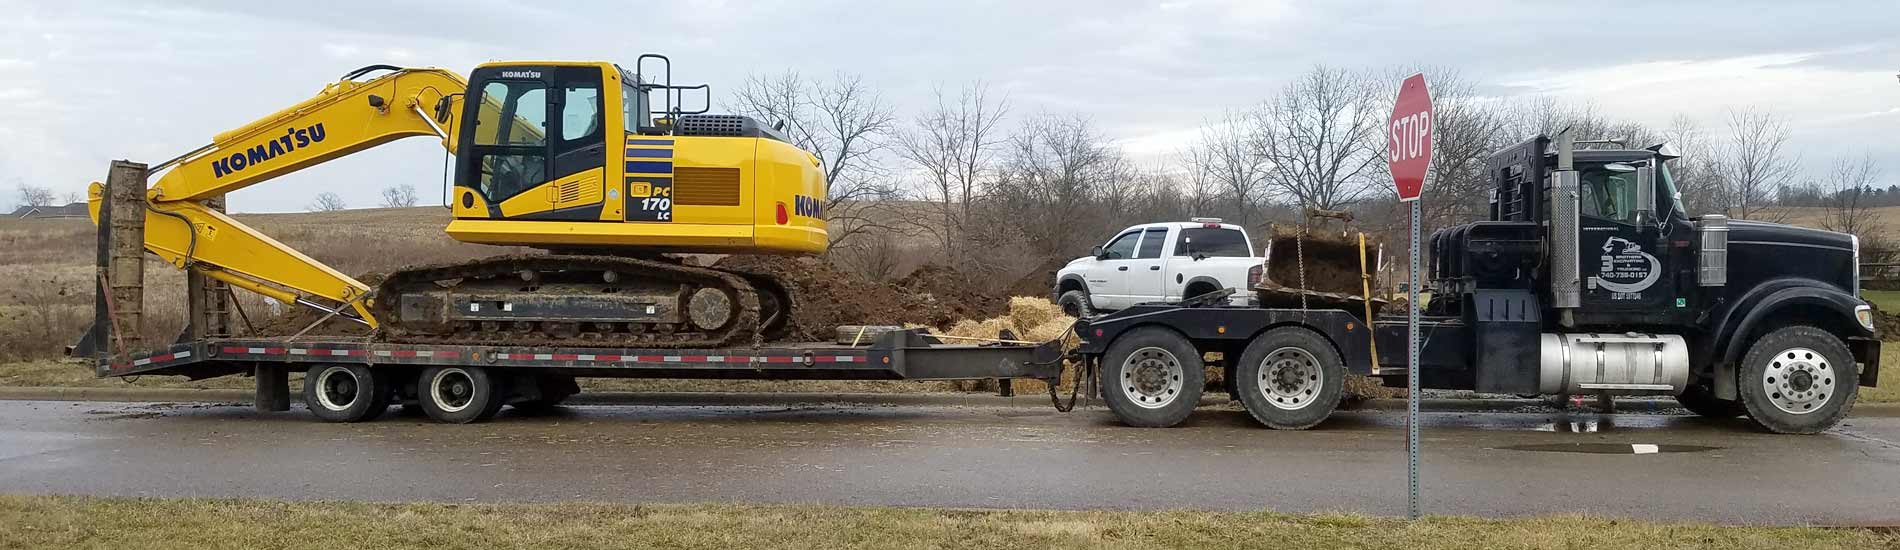 Large excavator loaded onto a flat bed trailer for hauling